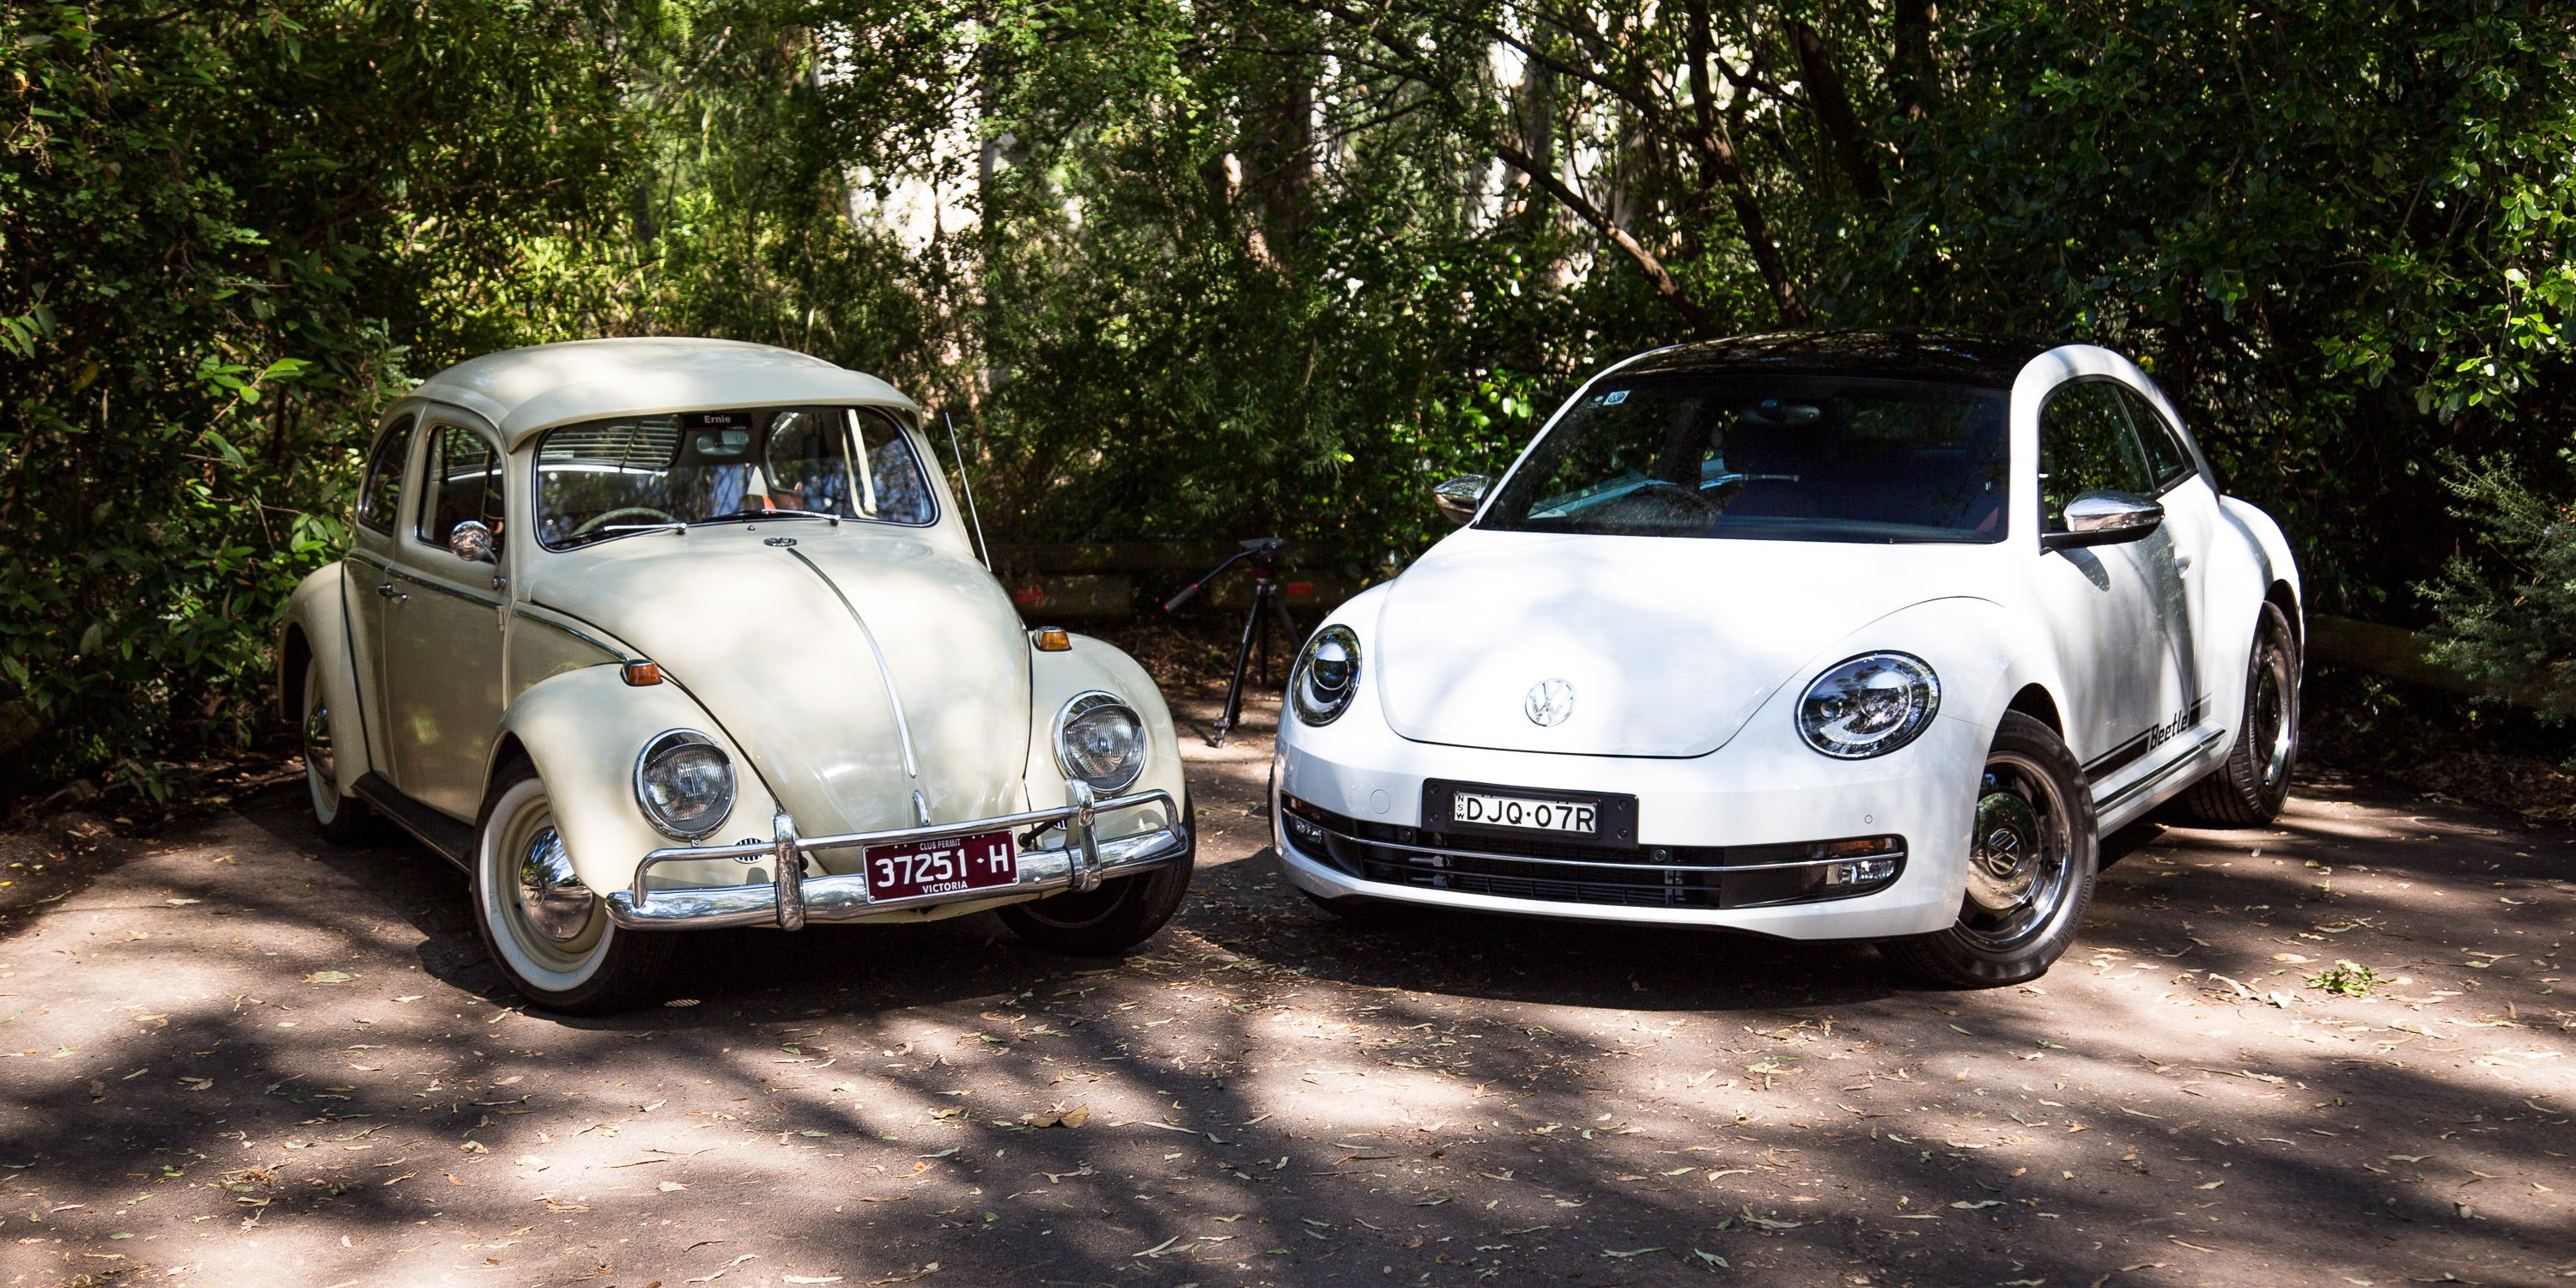 Volkswagen Beetle Old v New: 1965 v 2017 - Photos